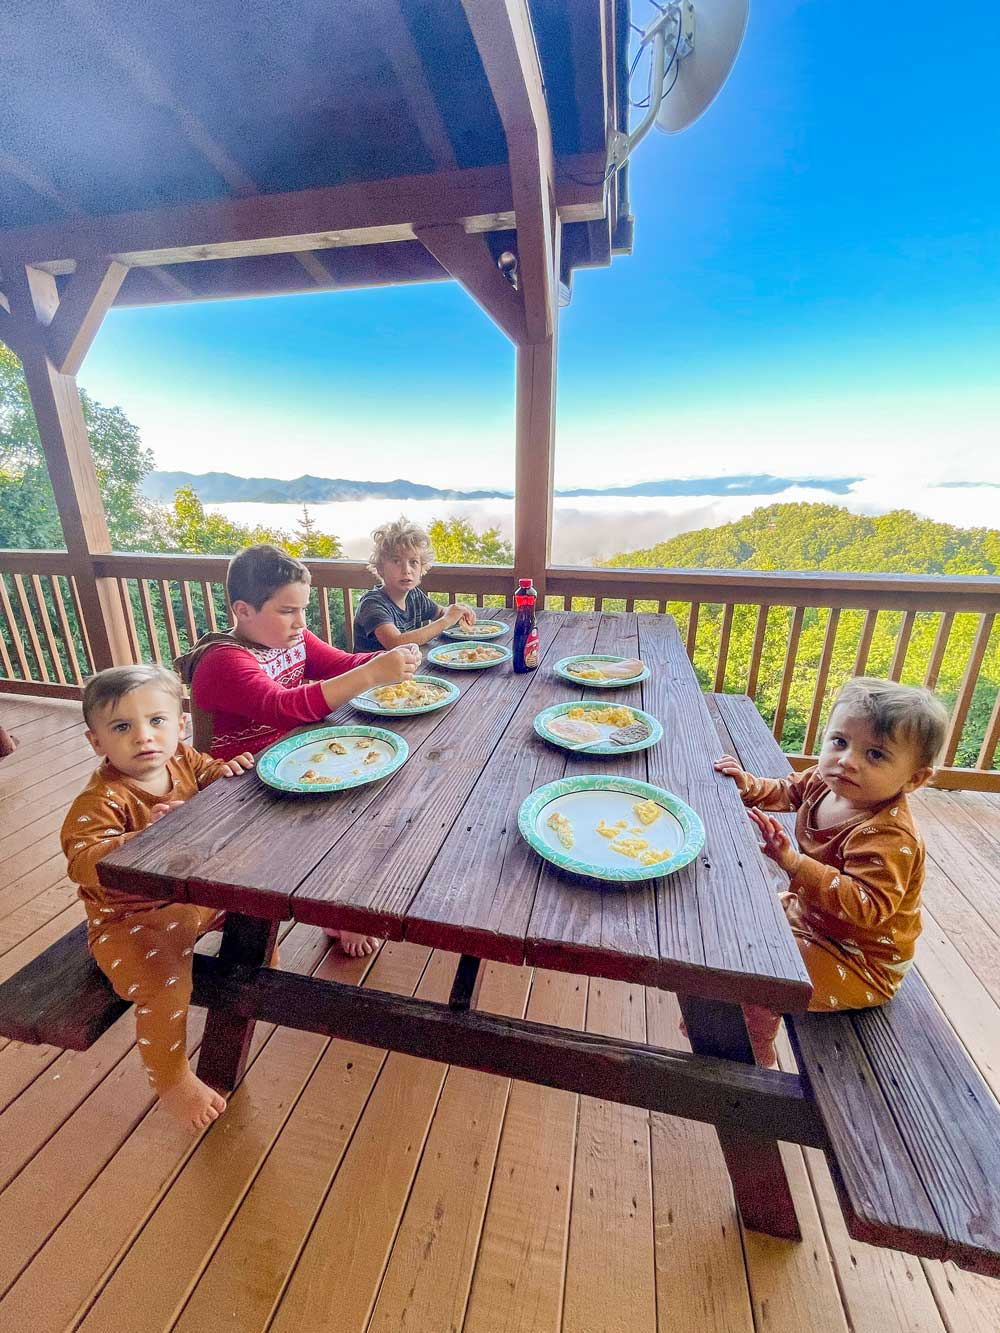 Best Things to Do in Bryson City NC with Kids   Things to do in Bryson City NC by popular Florida travel blog, Fresh Mommy Blog: image of some boys sitting outside on a cabin deck and eating breakfast.